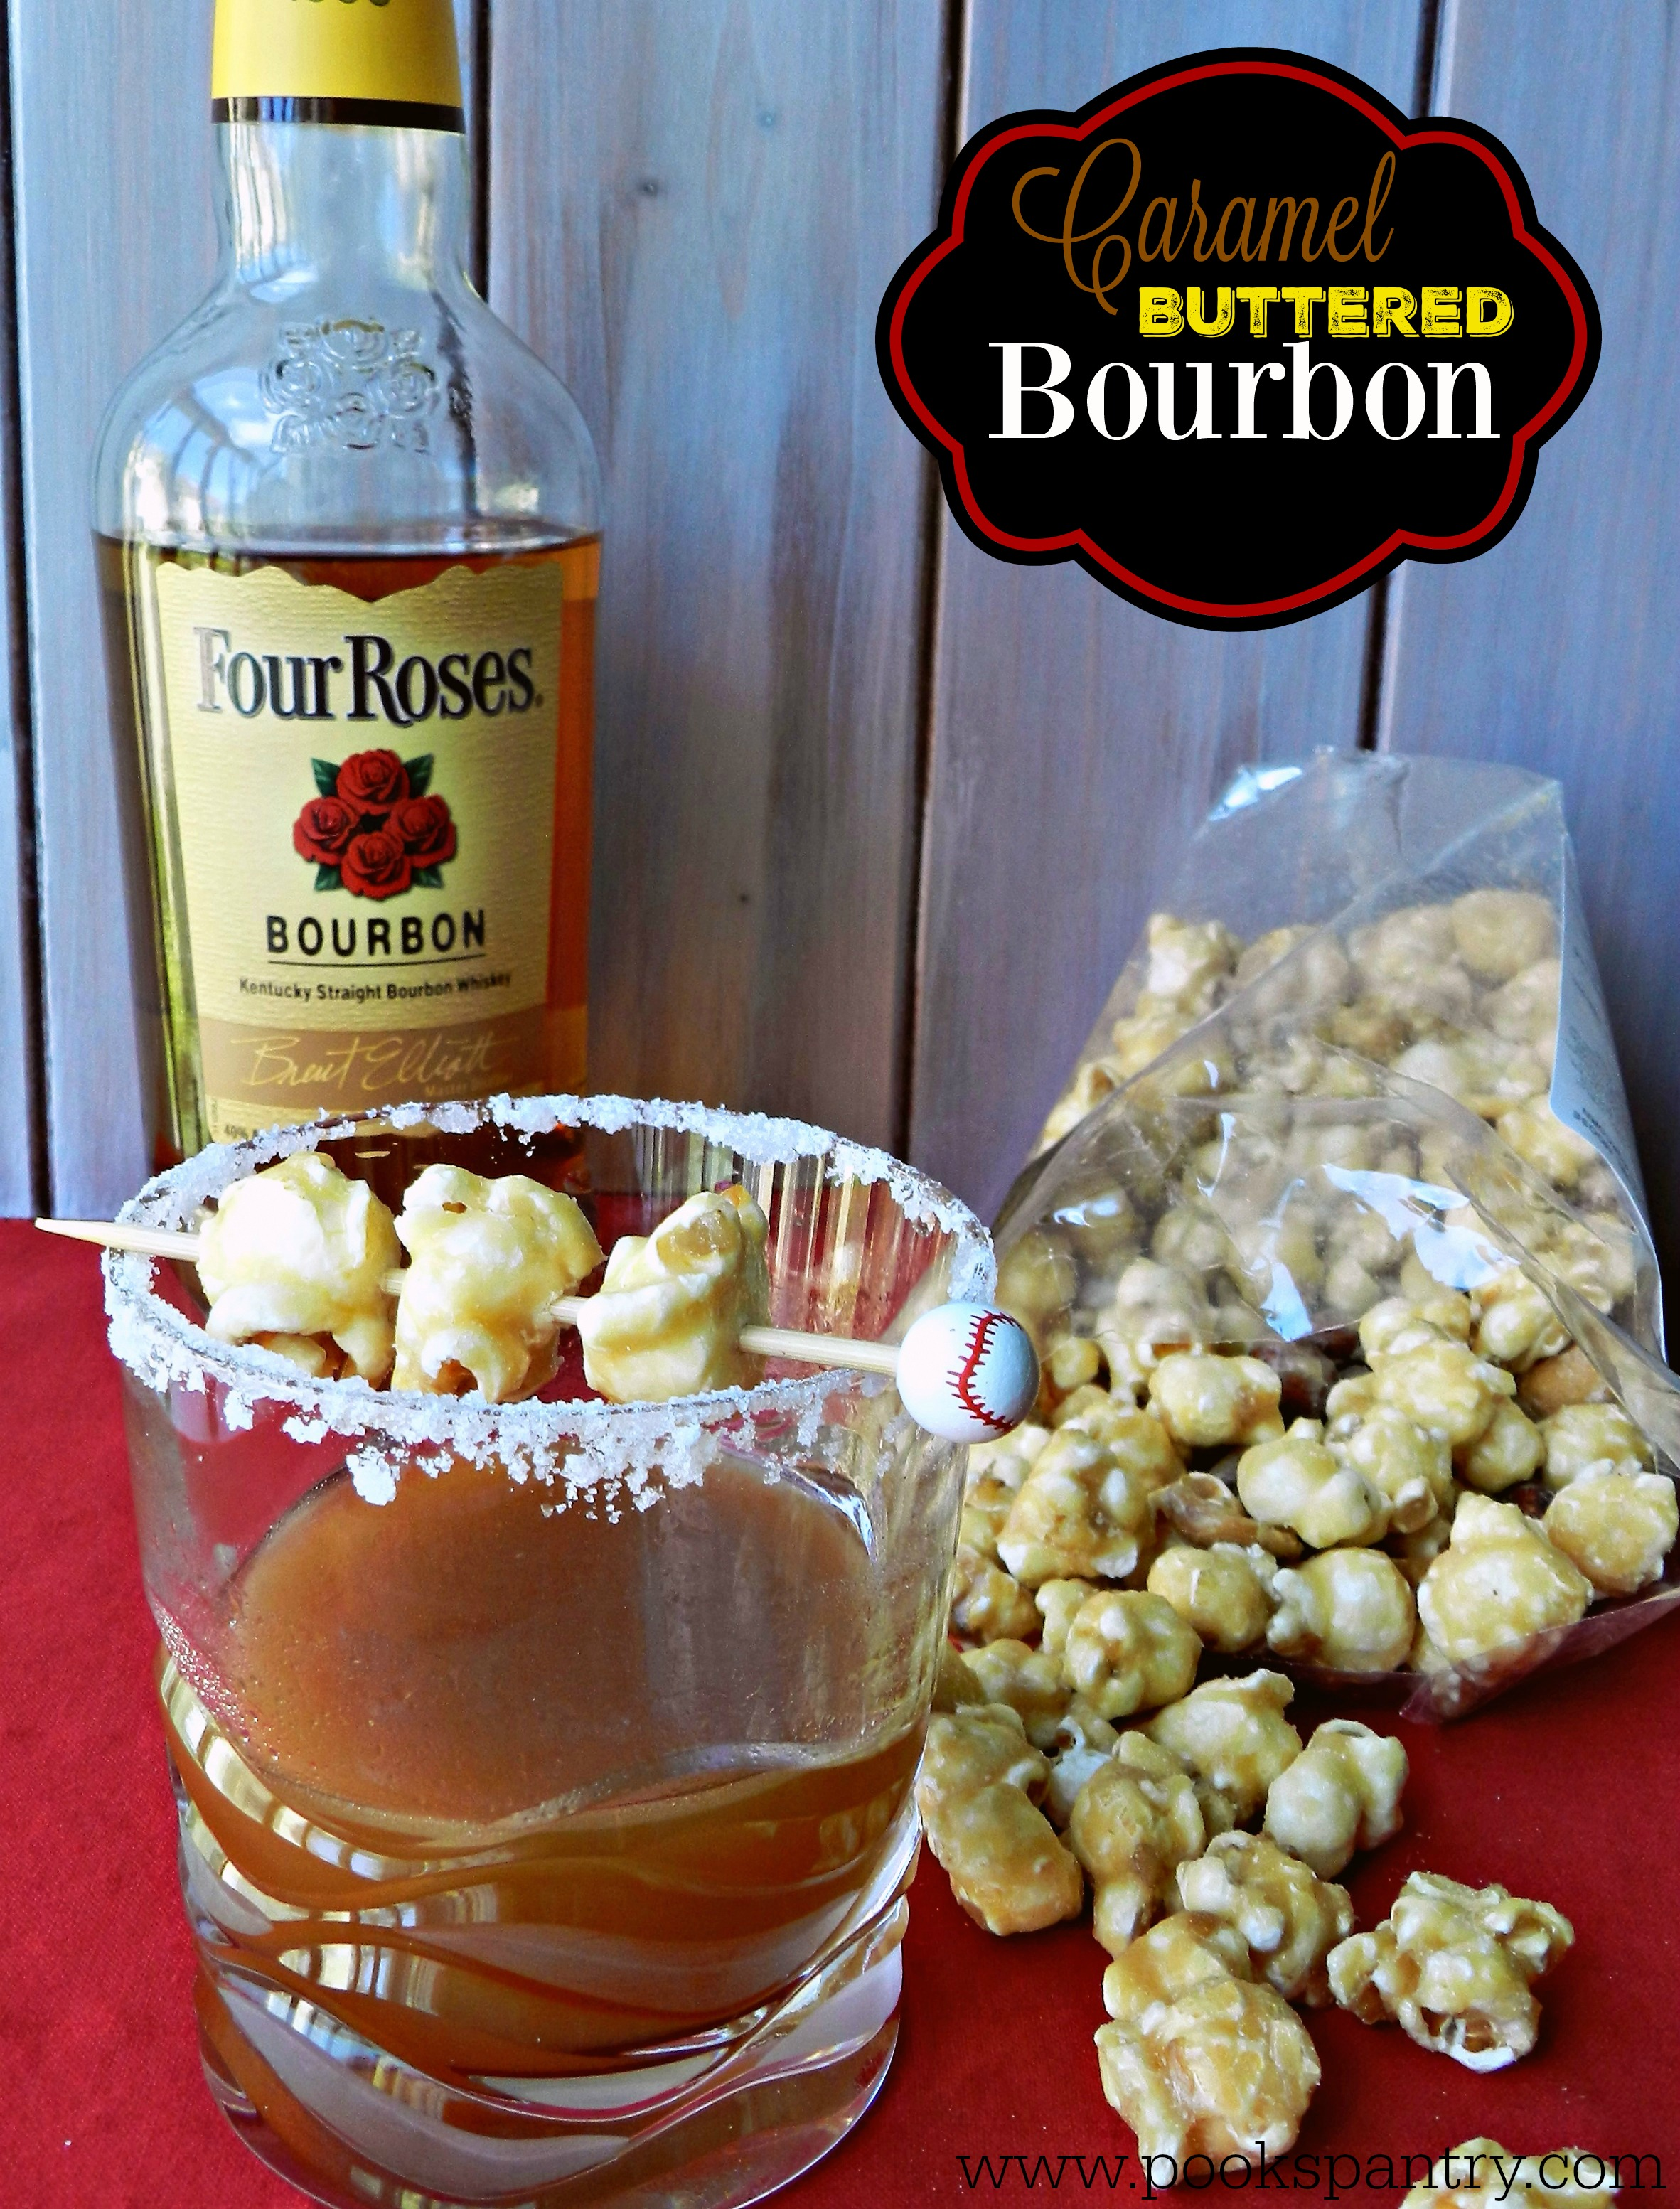 buttered bourbon with bottle of bourbon and caramel corn